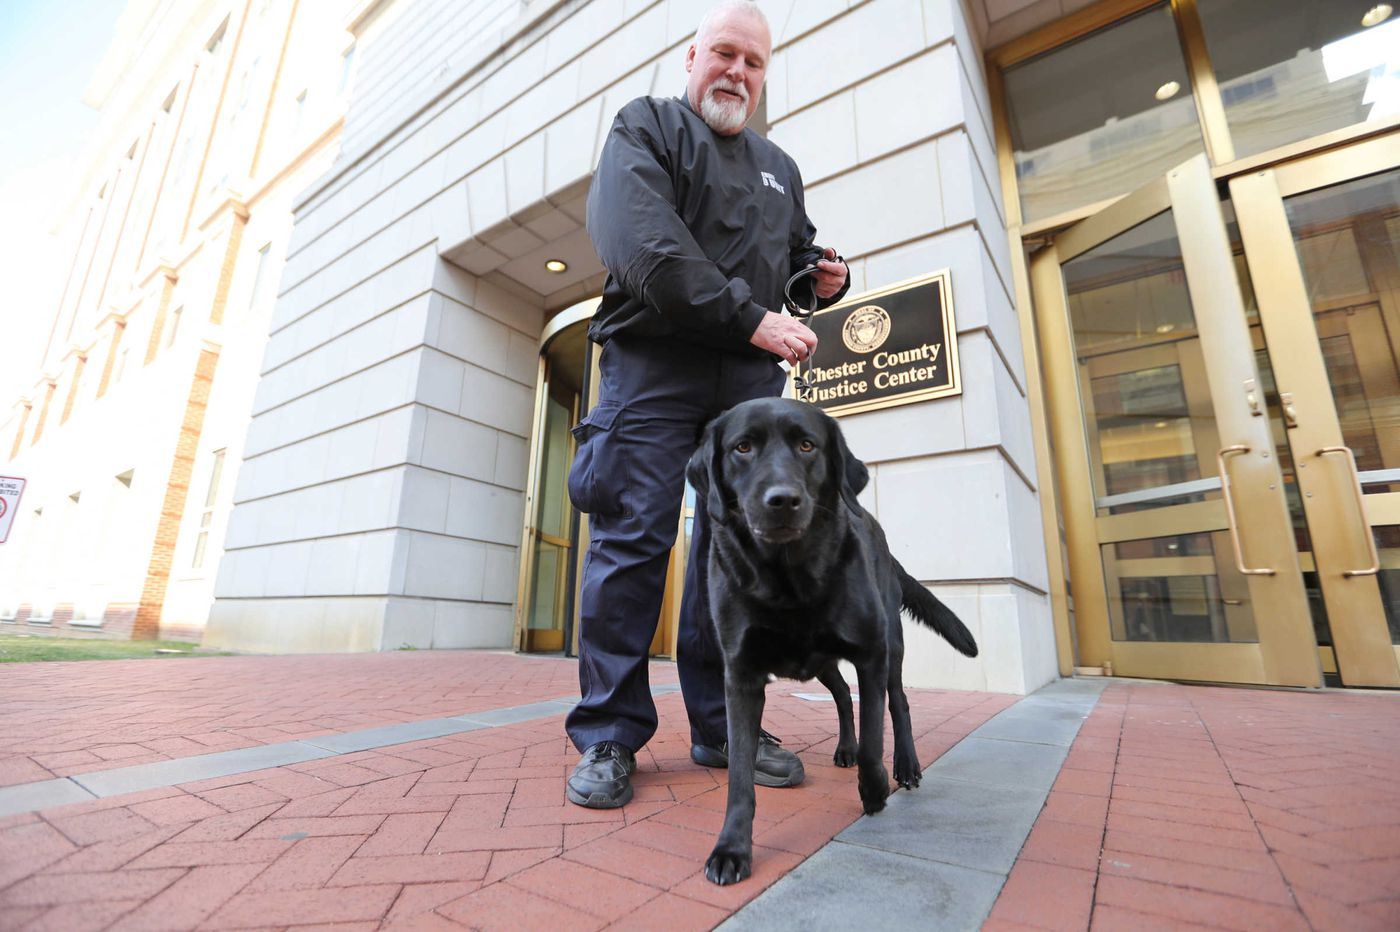 Chester County sheriff pushes back against controller, defending K-9 unit overtime